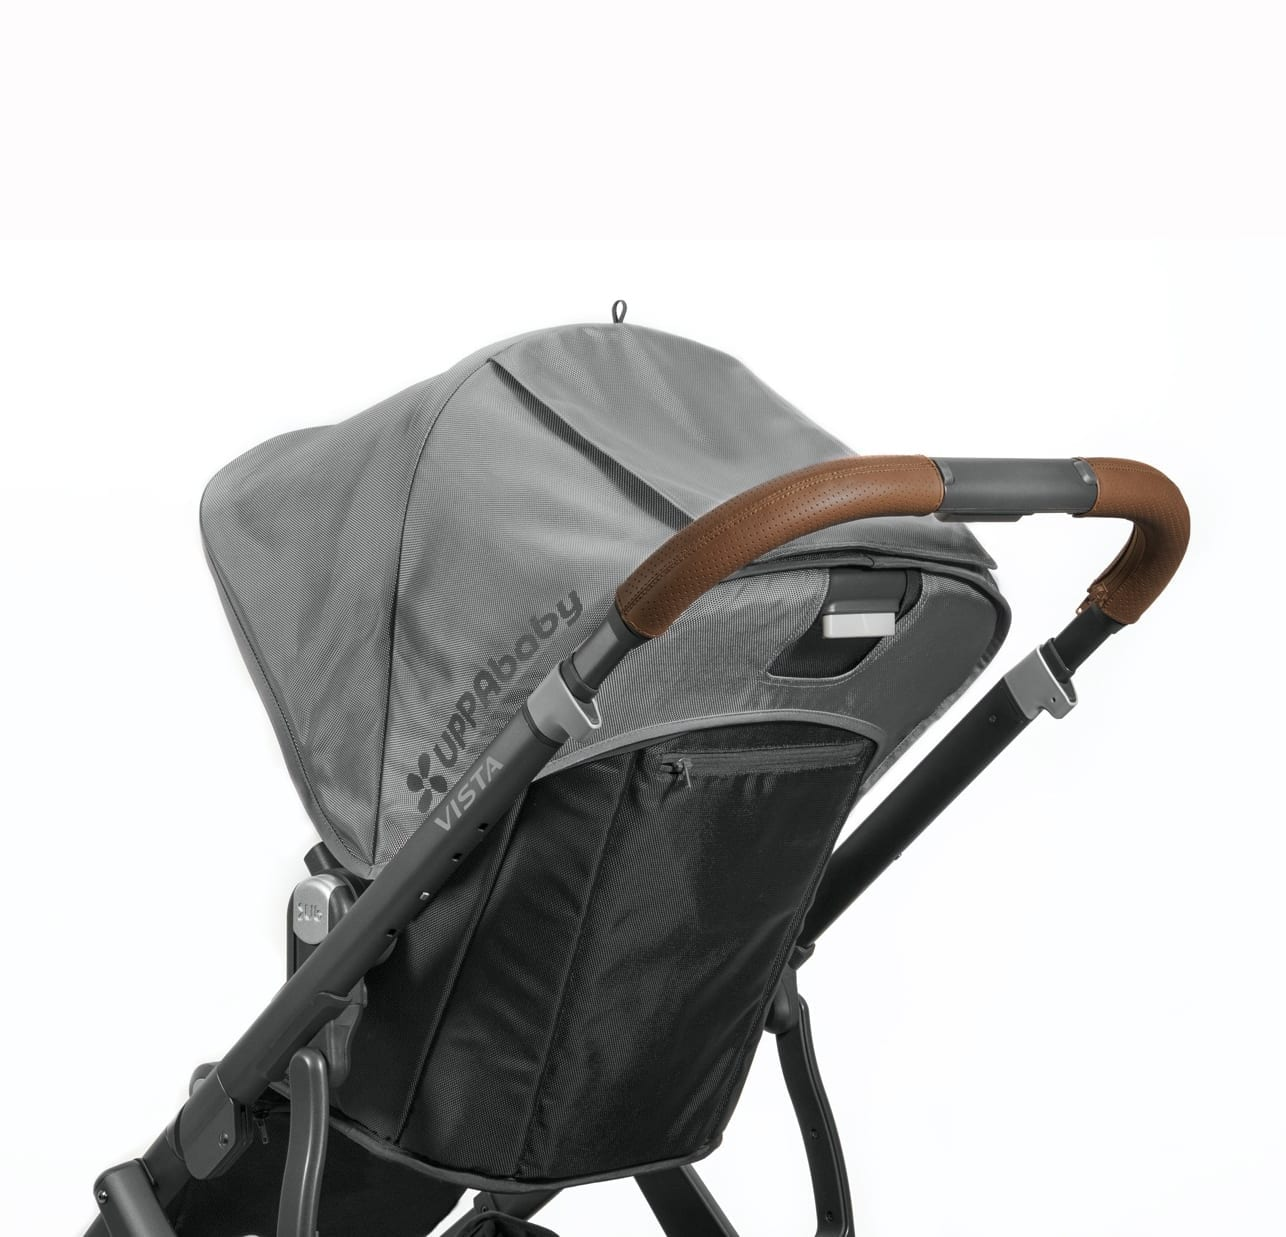 UPPABaby VISTA Leather Handle Bar Cover (saddle) product image